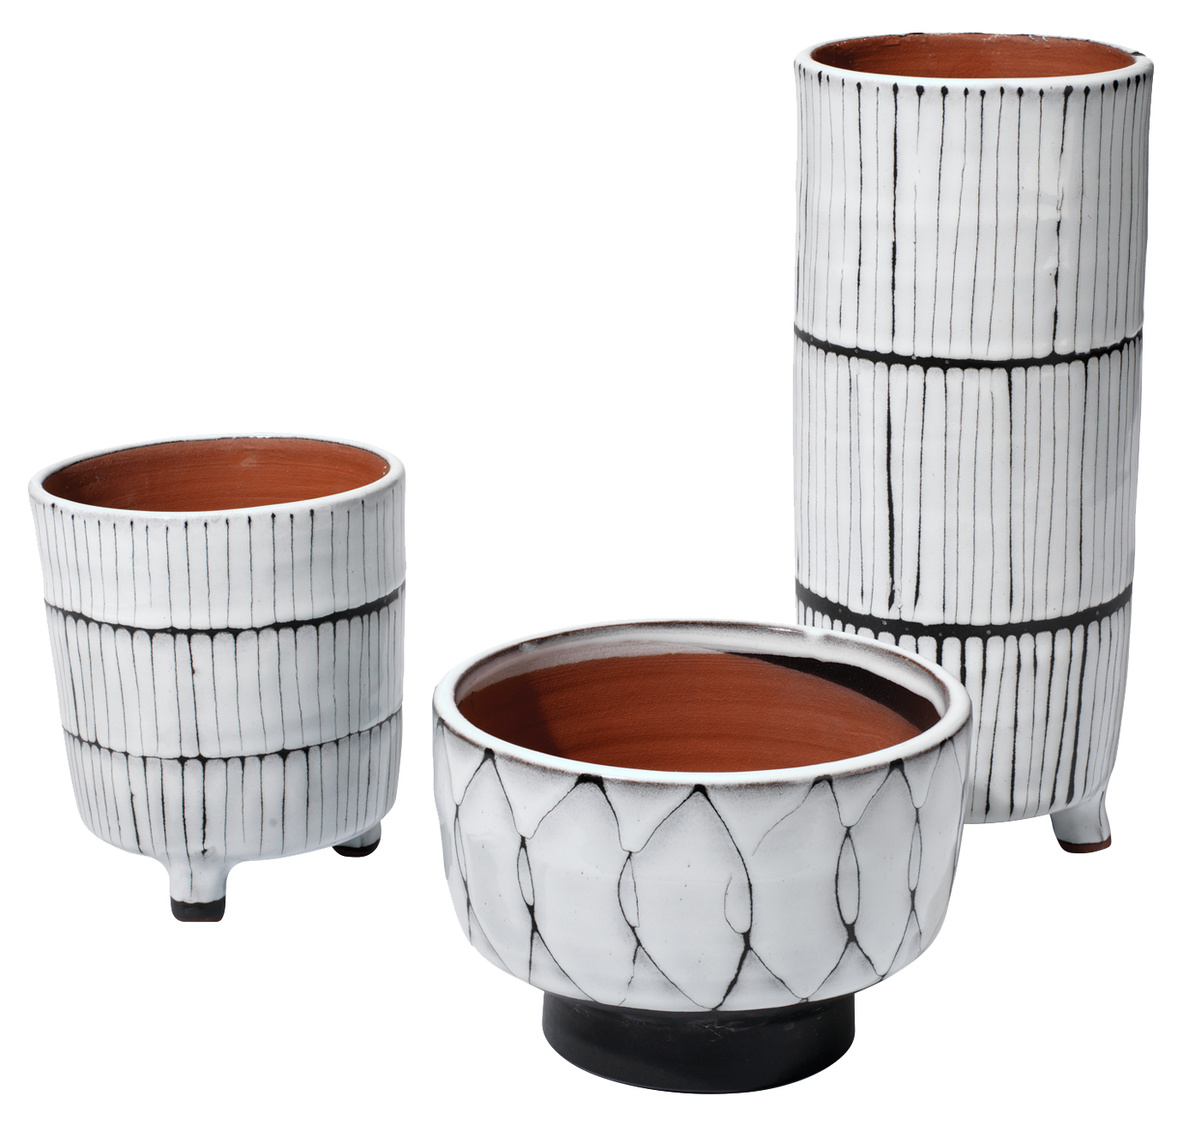 Tall Glazed Terra Cotta Pot White/Black Line   Large   5dx12h  Medium   5dx6h  Small   6.5dx5h